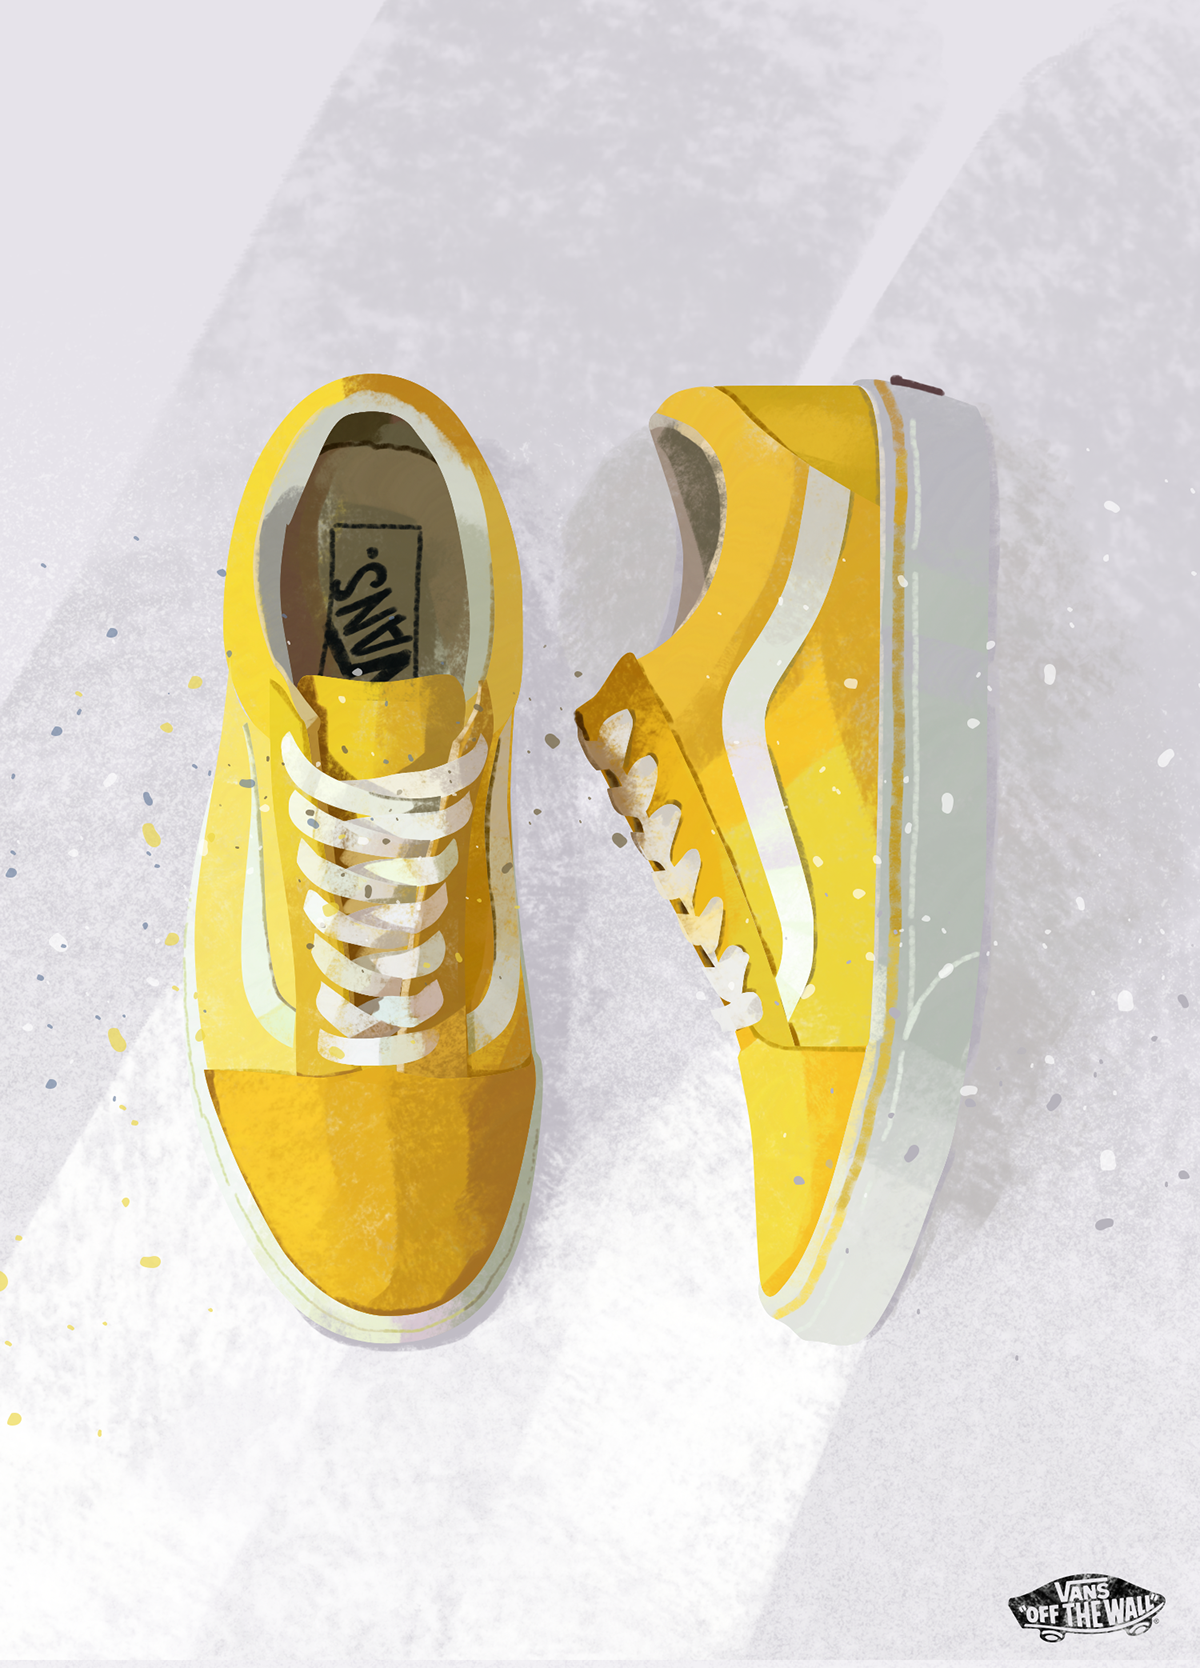 off the wall | VANS on Pantone Canvas Gallery